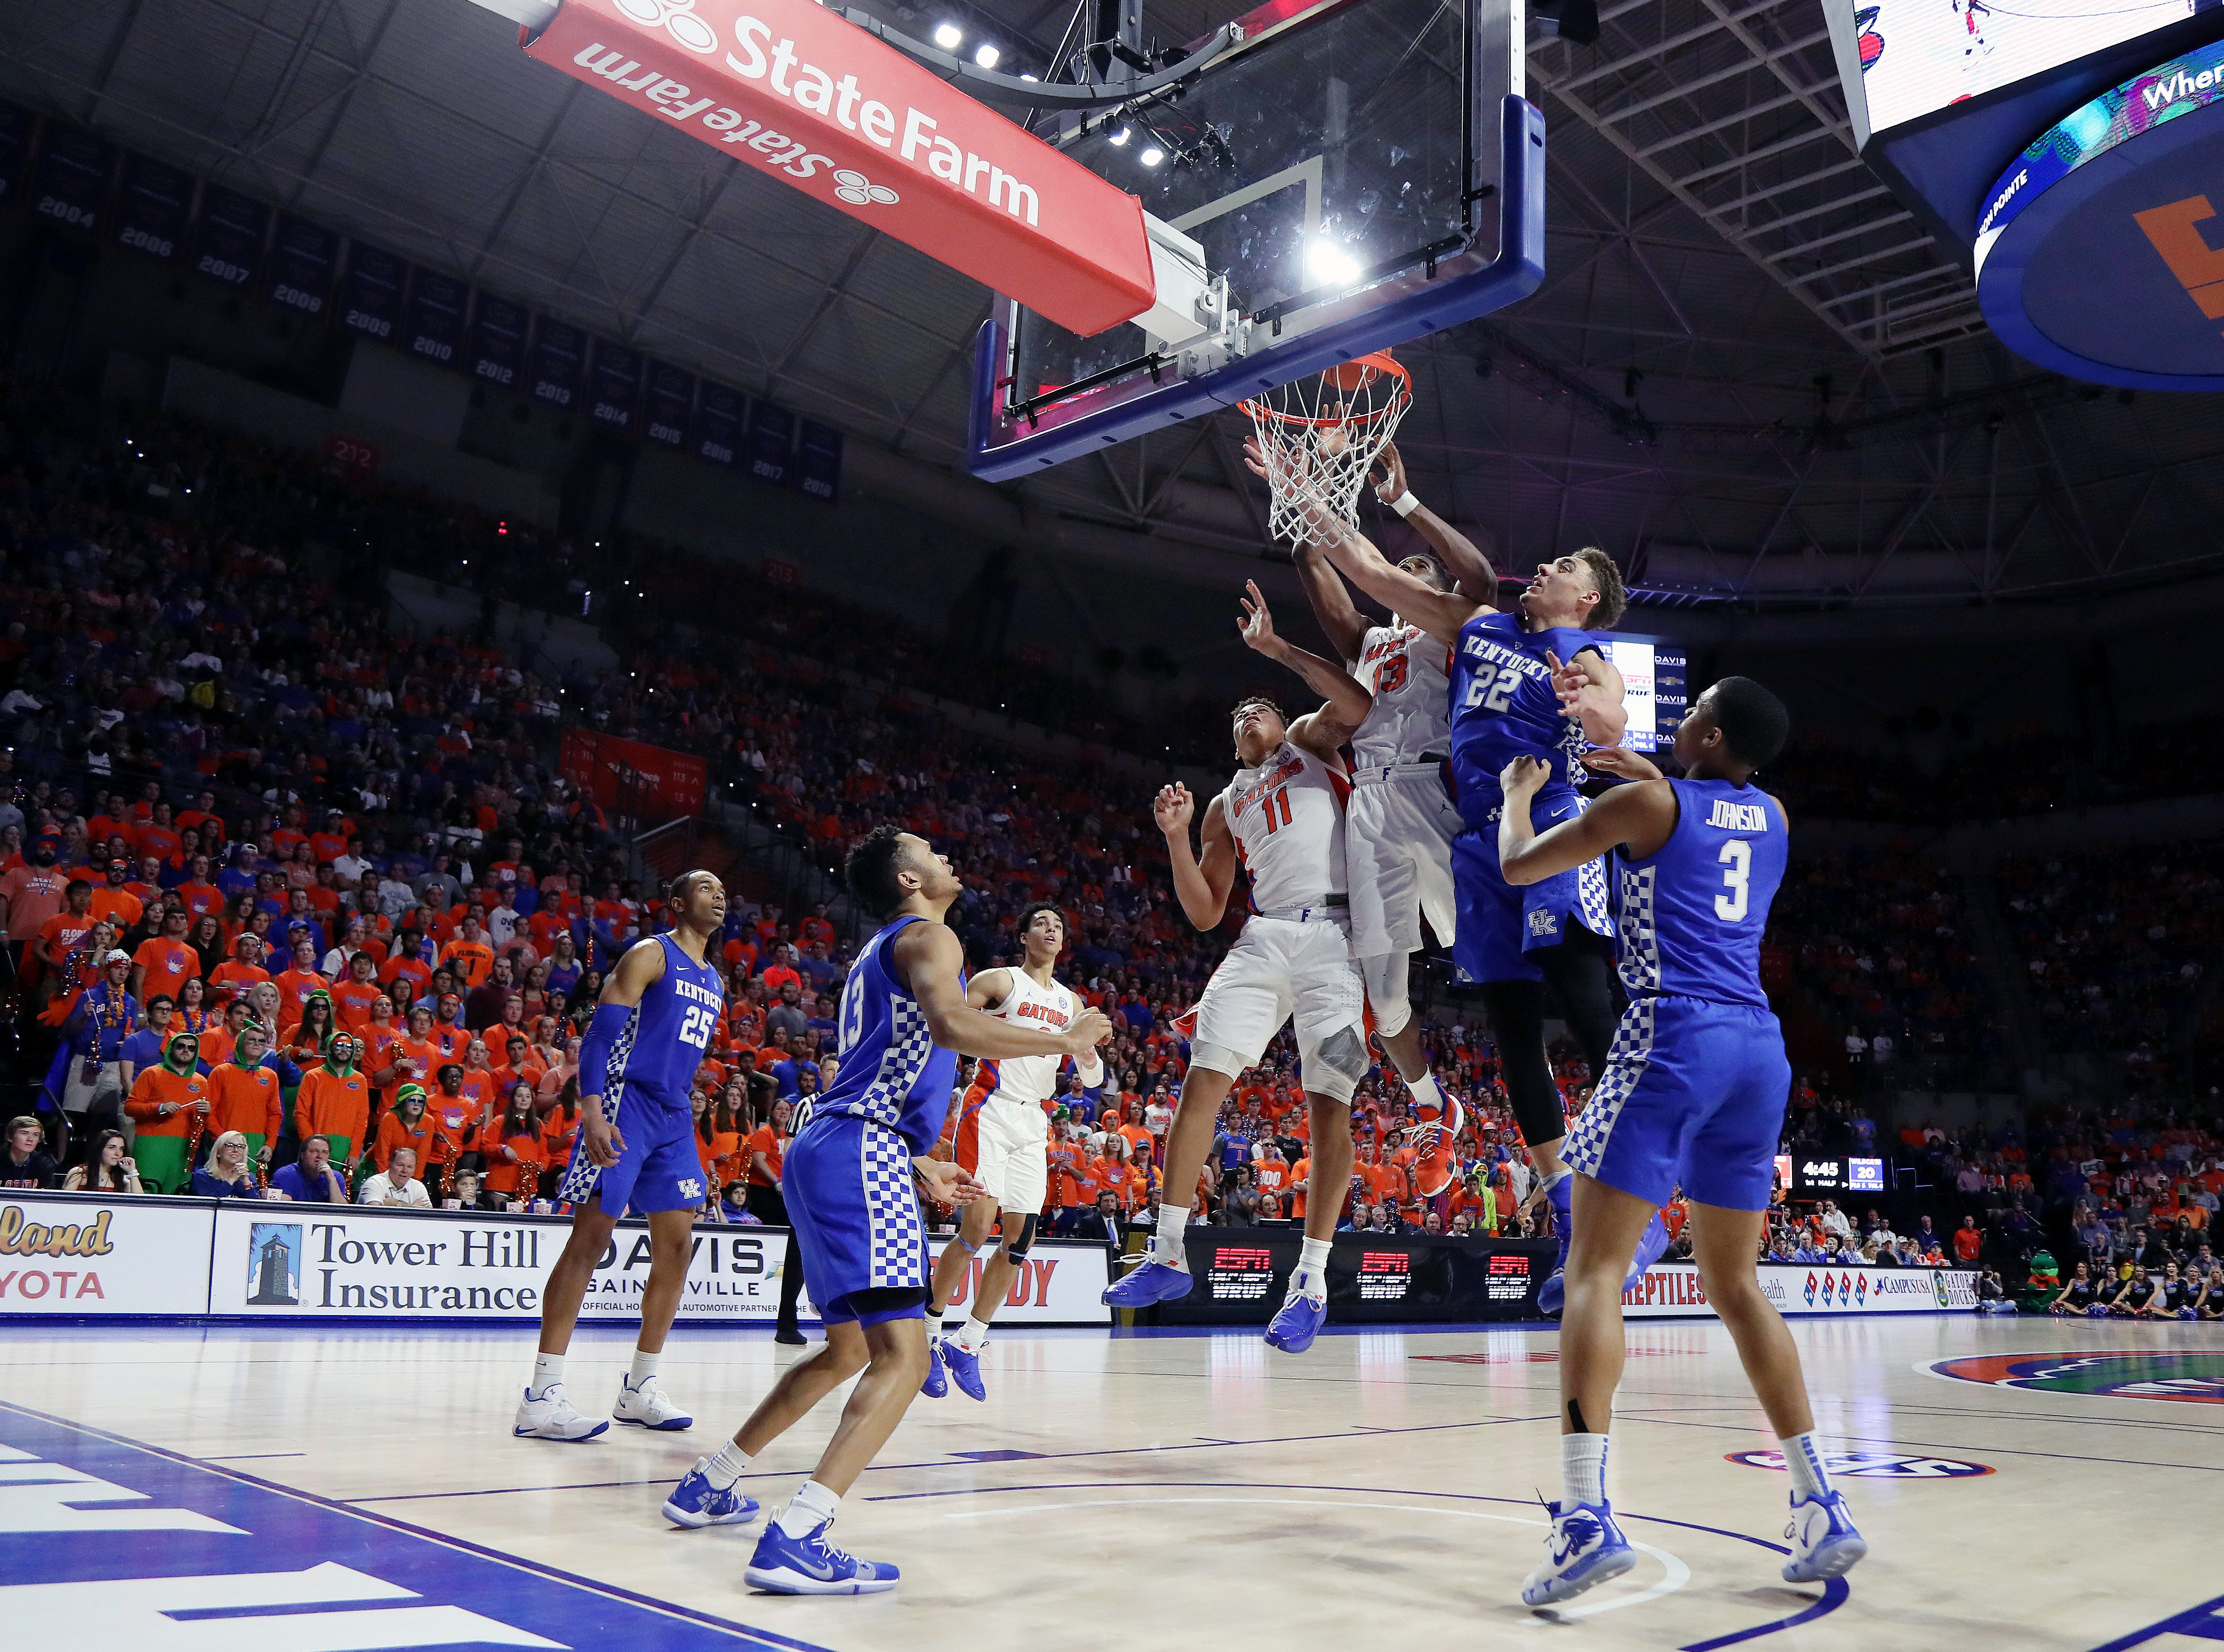 Florida Gators forward Keyontae Johnson (11) makes a layup over Kentucky Wildcats forward Reid Travis (22) during the first half at Exactech Arena in Gainesville, Florida, on Saturday, Feb. 2, 2019.